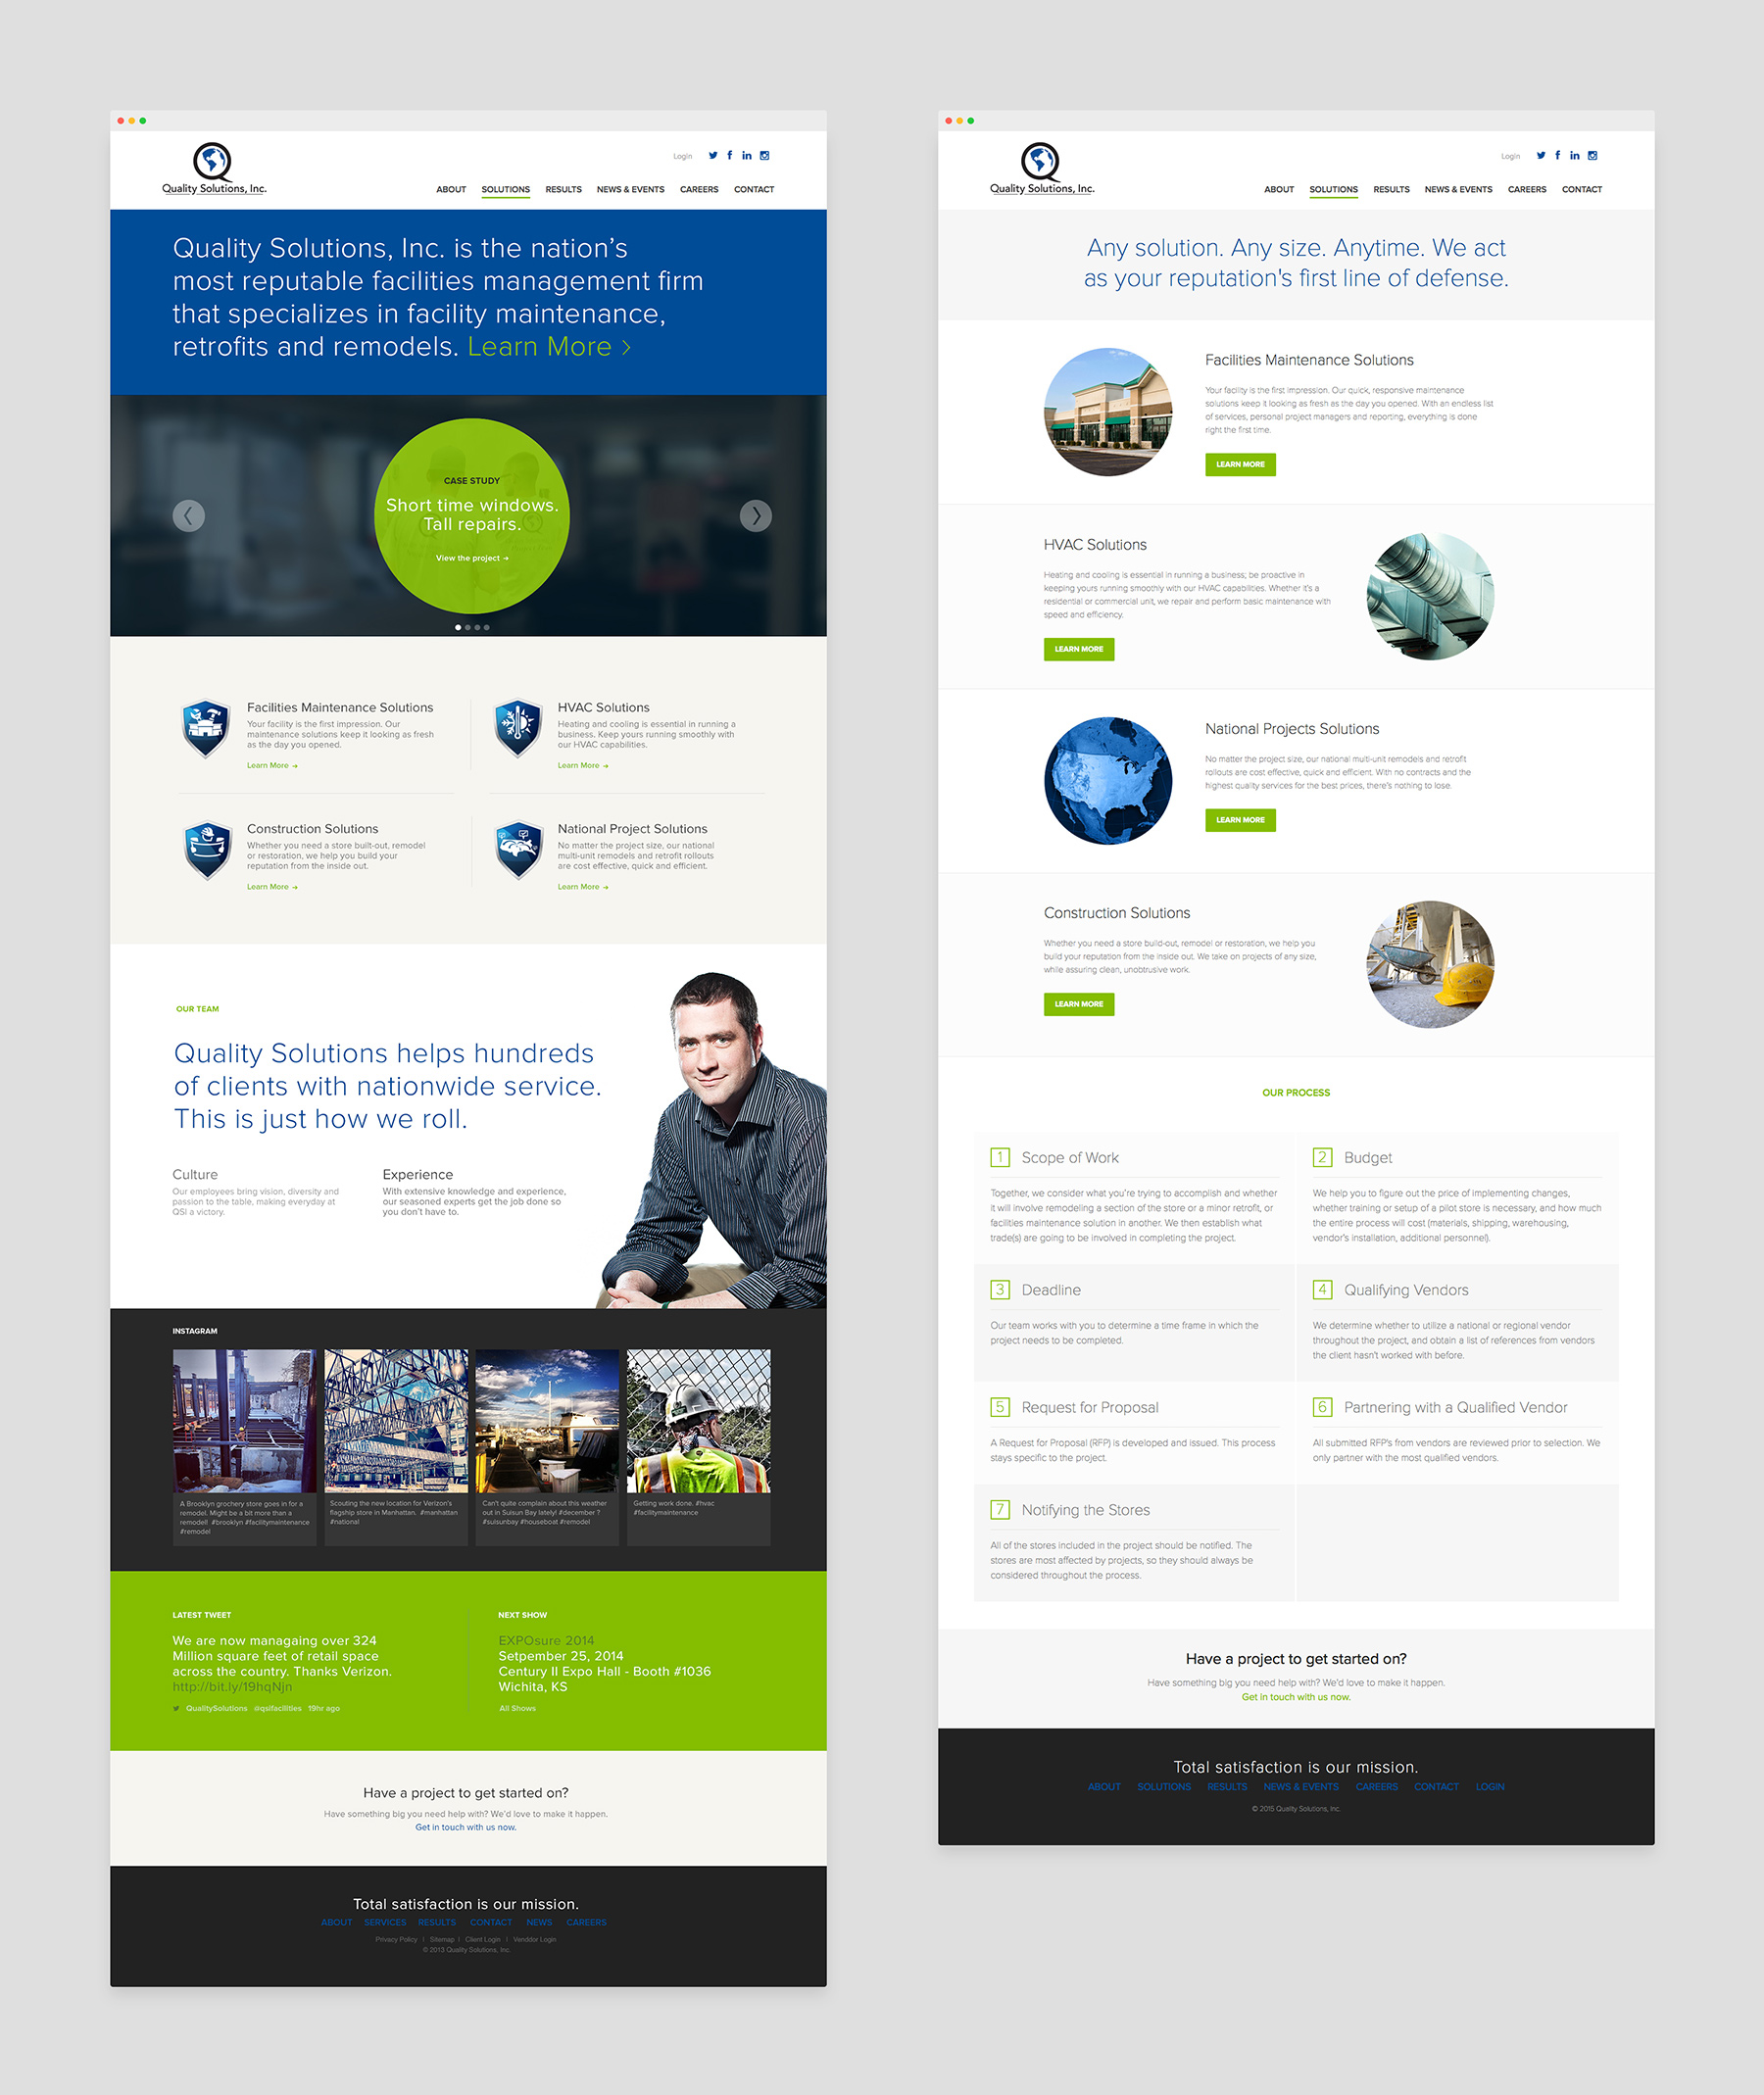 jajo-qsi-website-casestudy-2